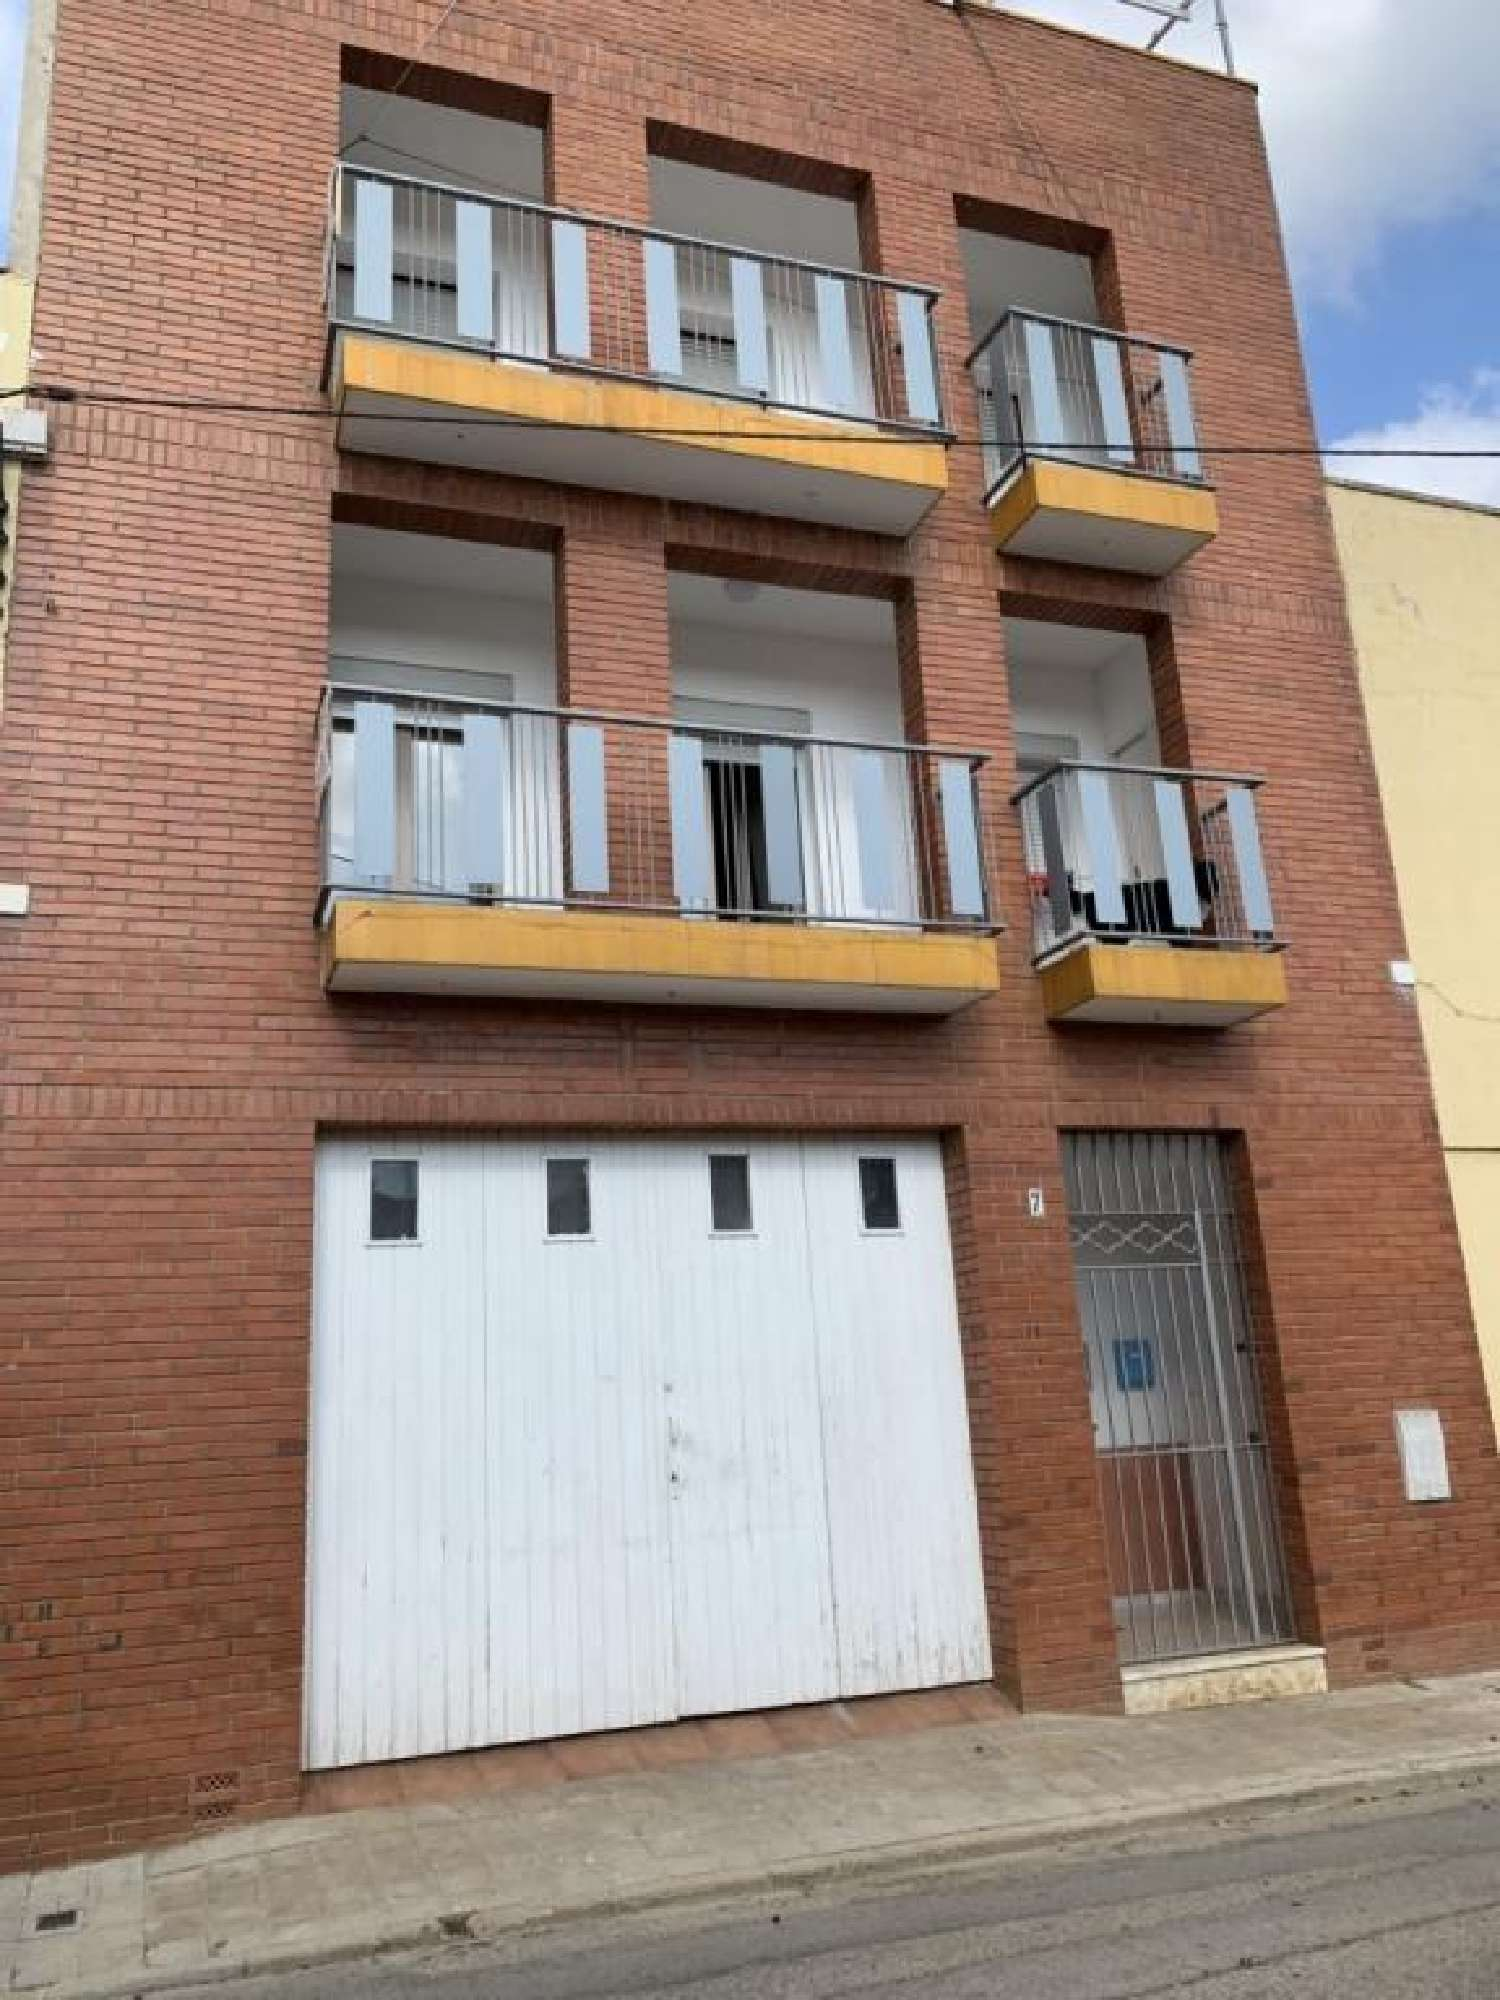 roses girona appartement foto 4606329